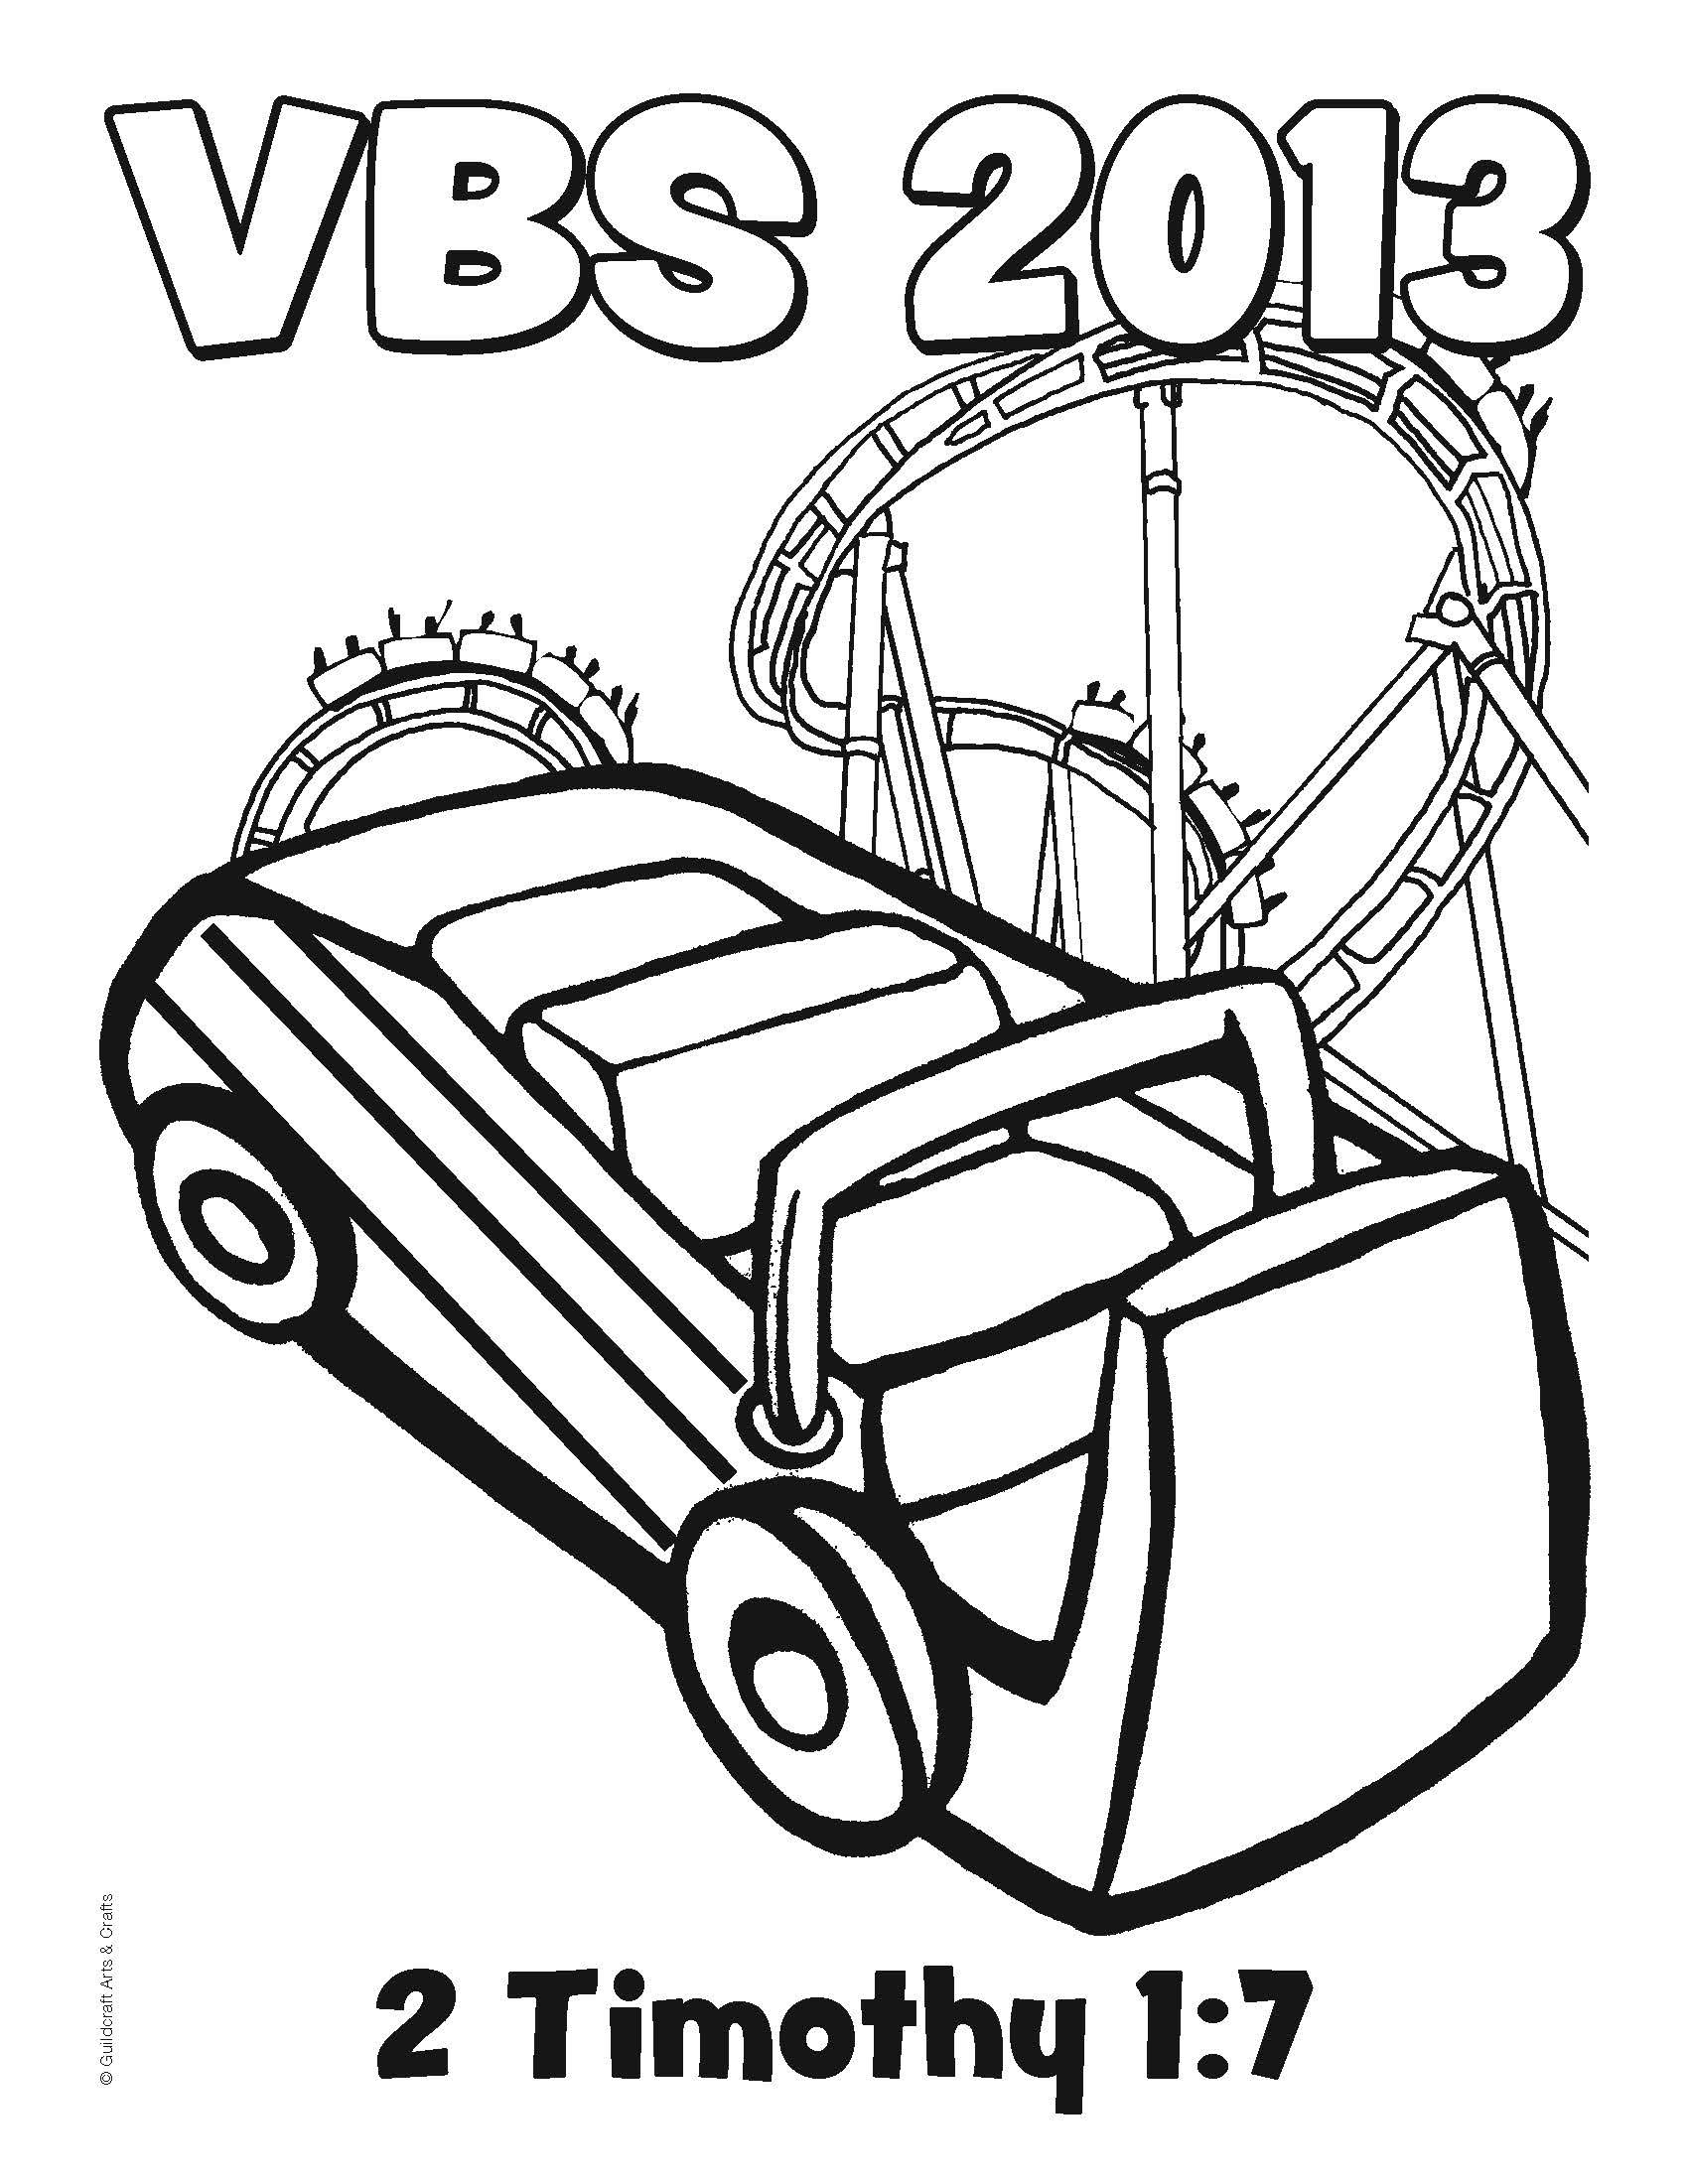 Free Roller Coaster VBS 2013 coloring sheet from